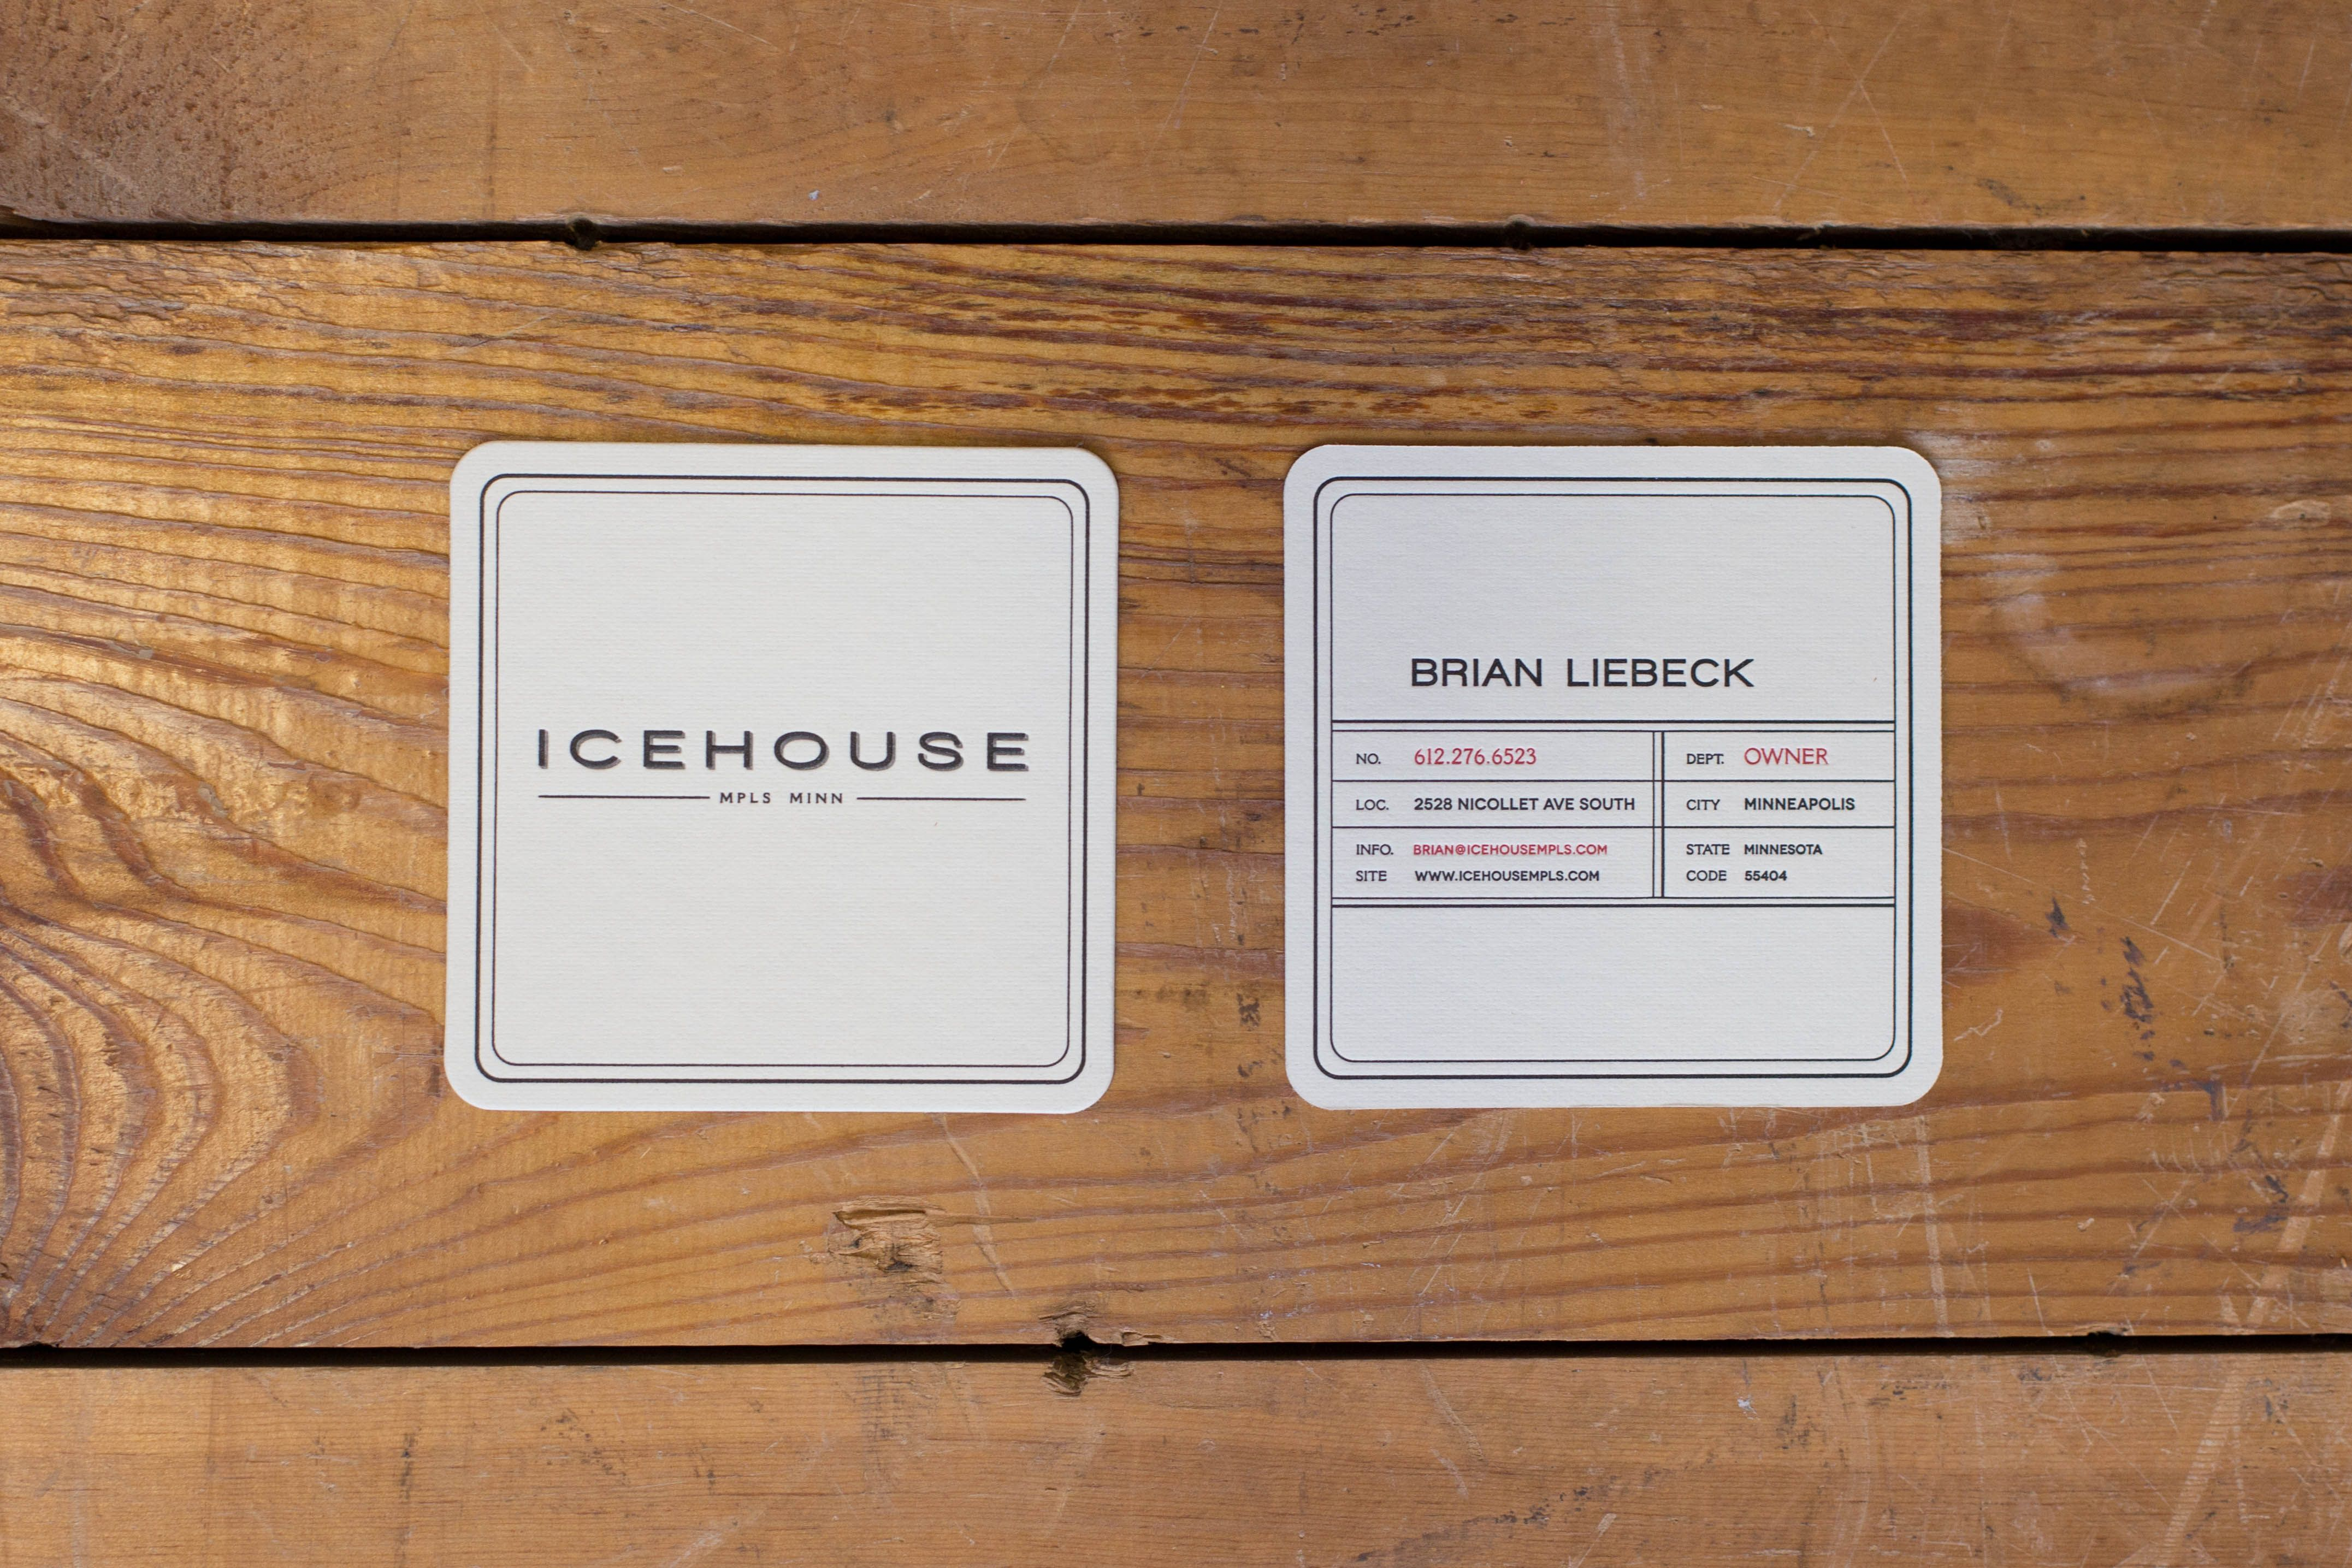 Nice 2 color coaster business cards for Icehouse in Minneapolis ...